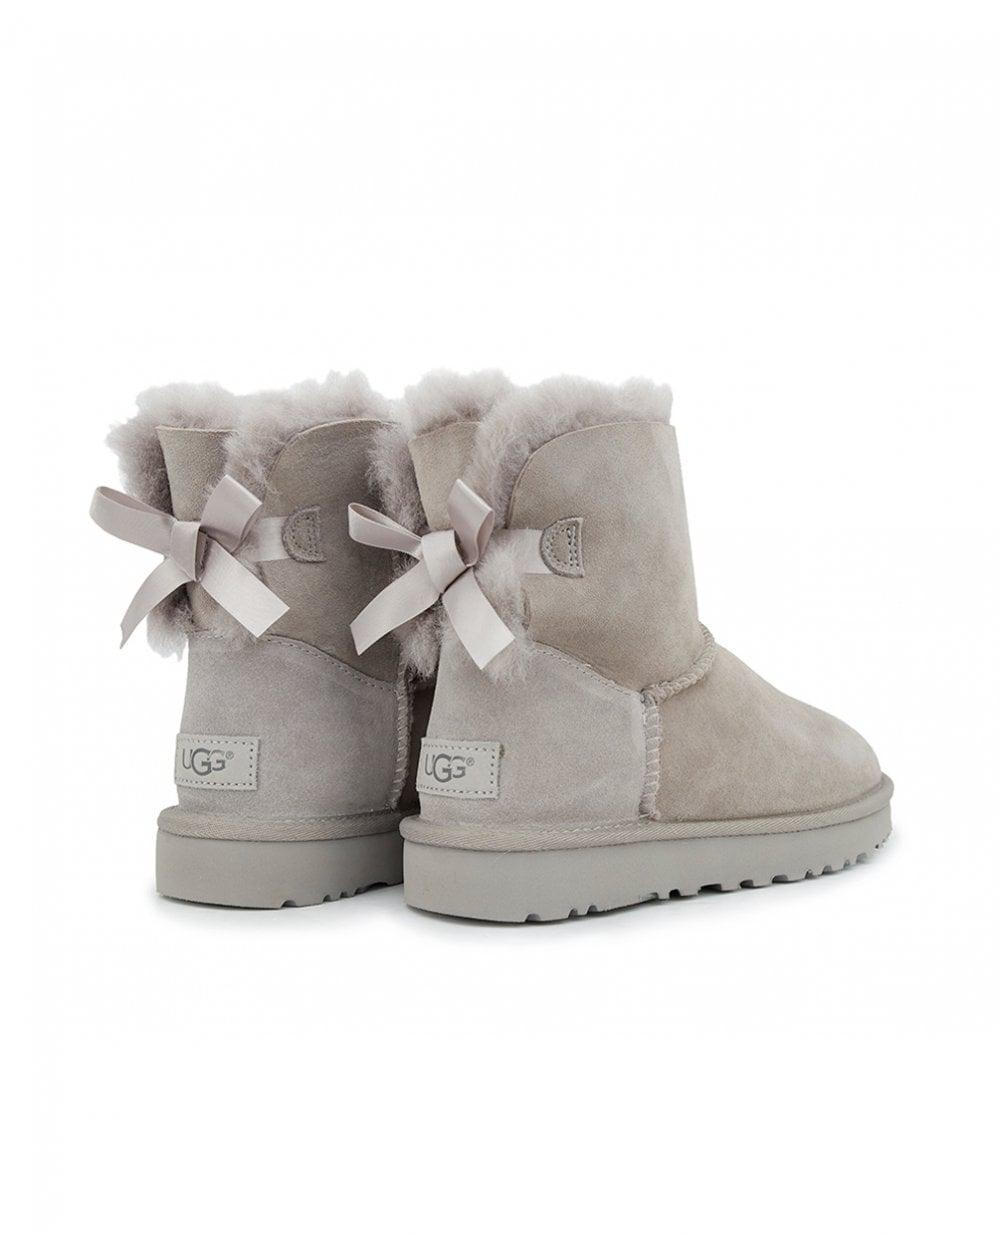 ee542a0e05f Lyst - UGG Mini Bailey Bow Ii Classic Boots in Gray